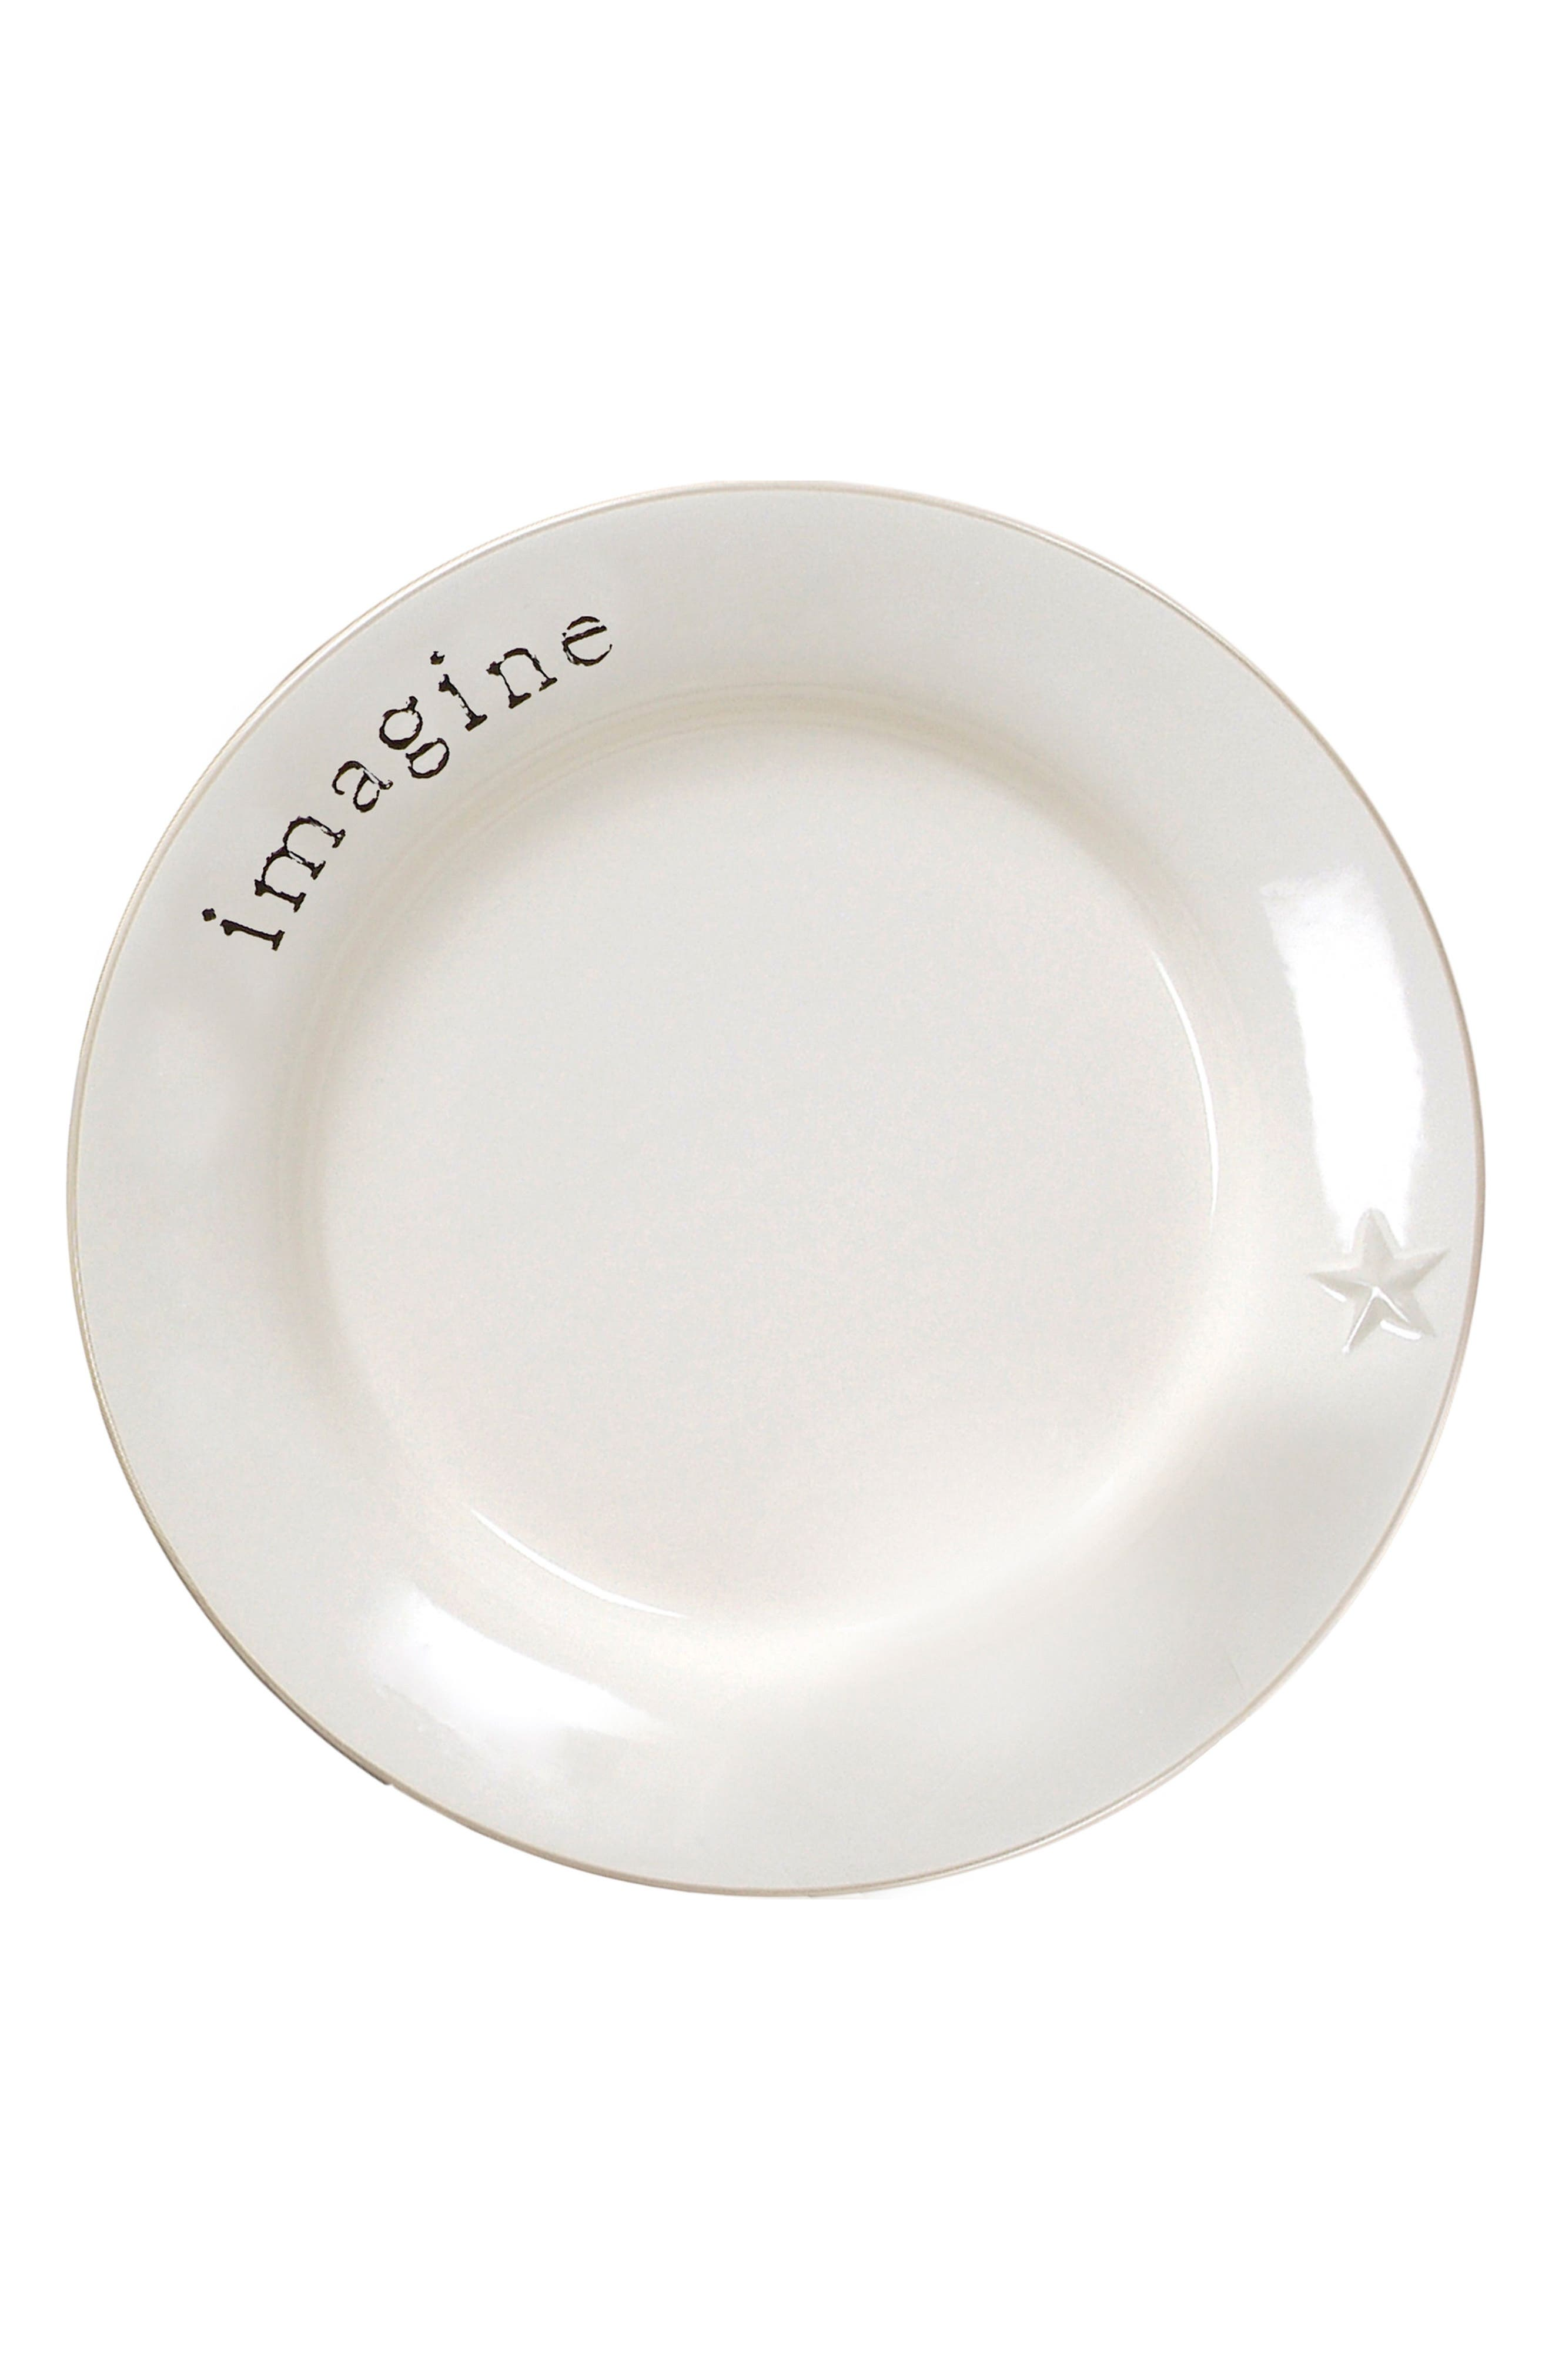 Word Expressions Dinner Plate,                         Main,                         color, White